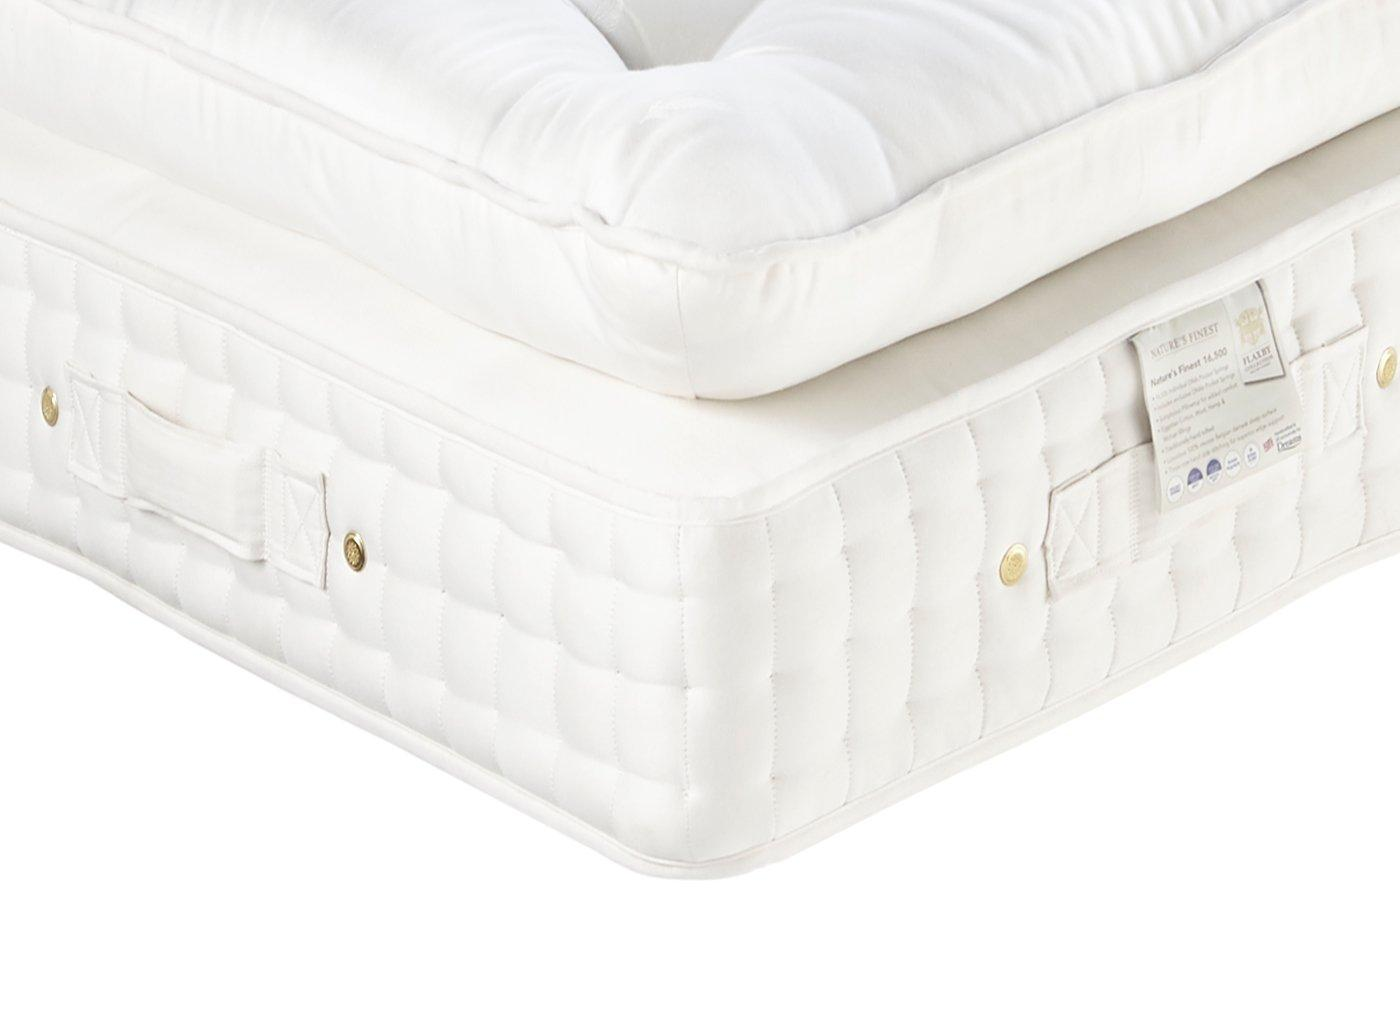 Flaxby Natures Finest 16500 Dnair Mattress - Soft / Medium Soft 4'0 Small double